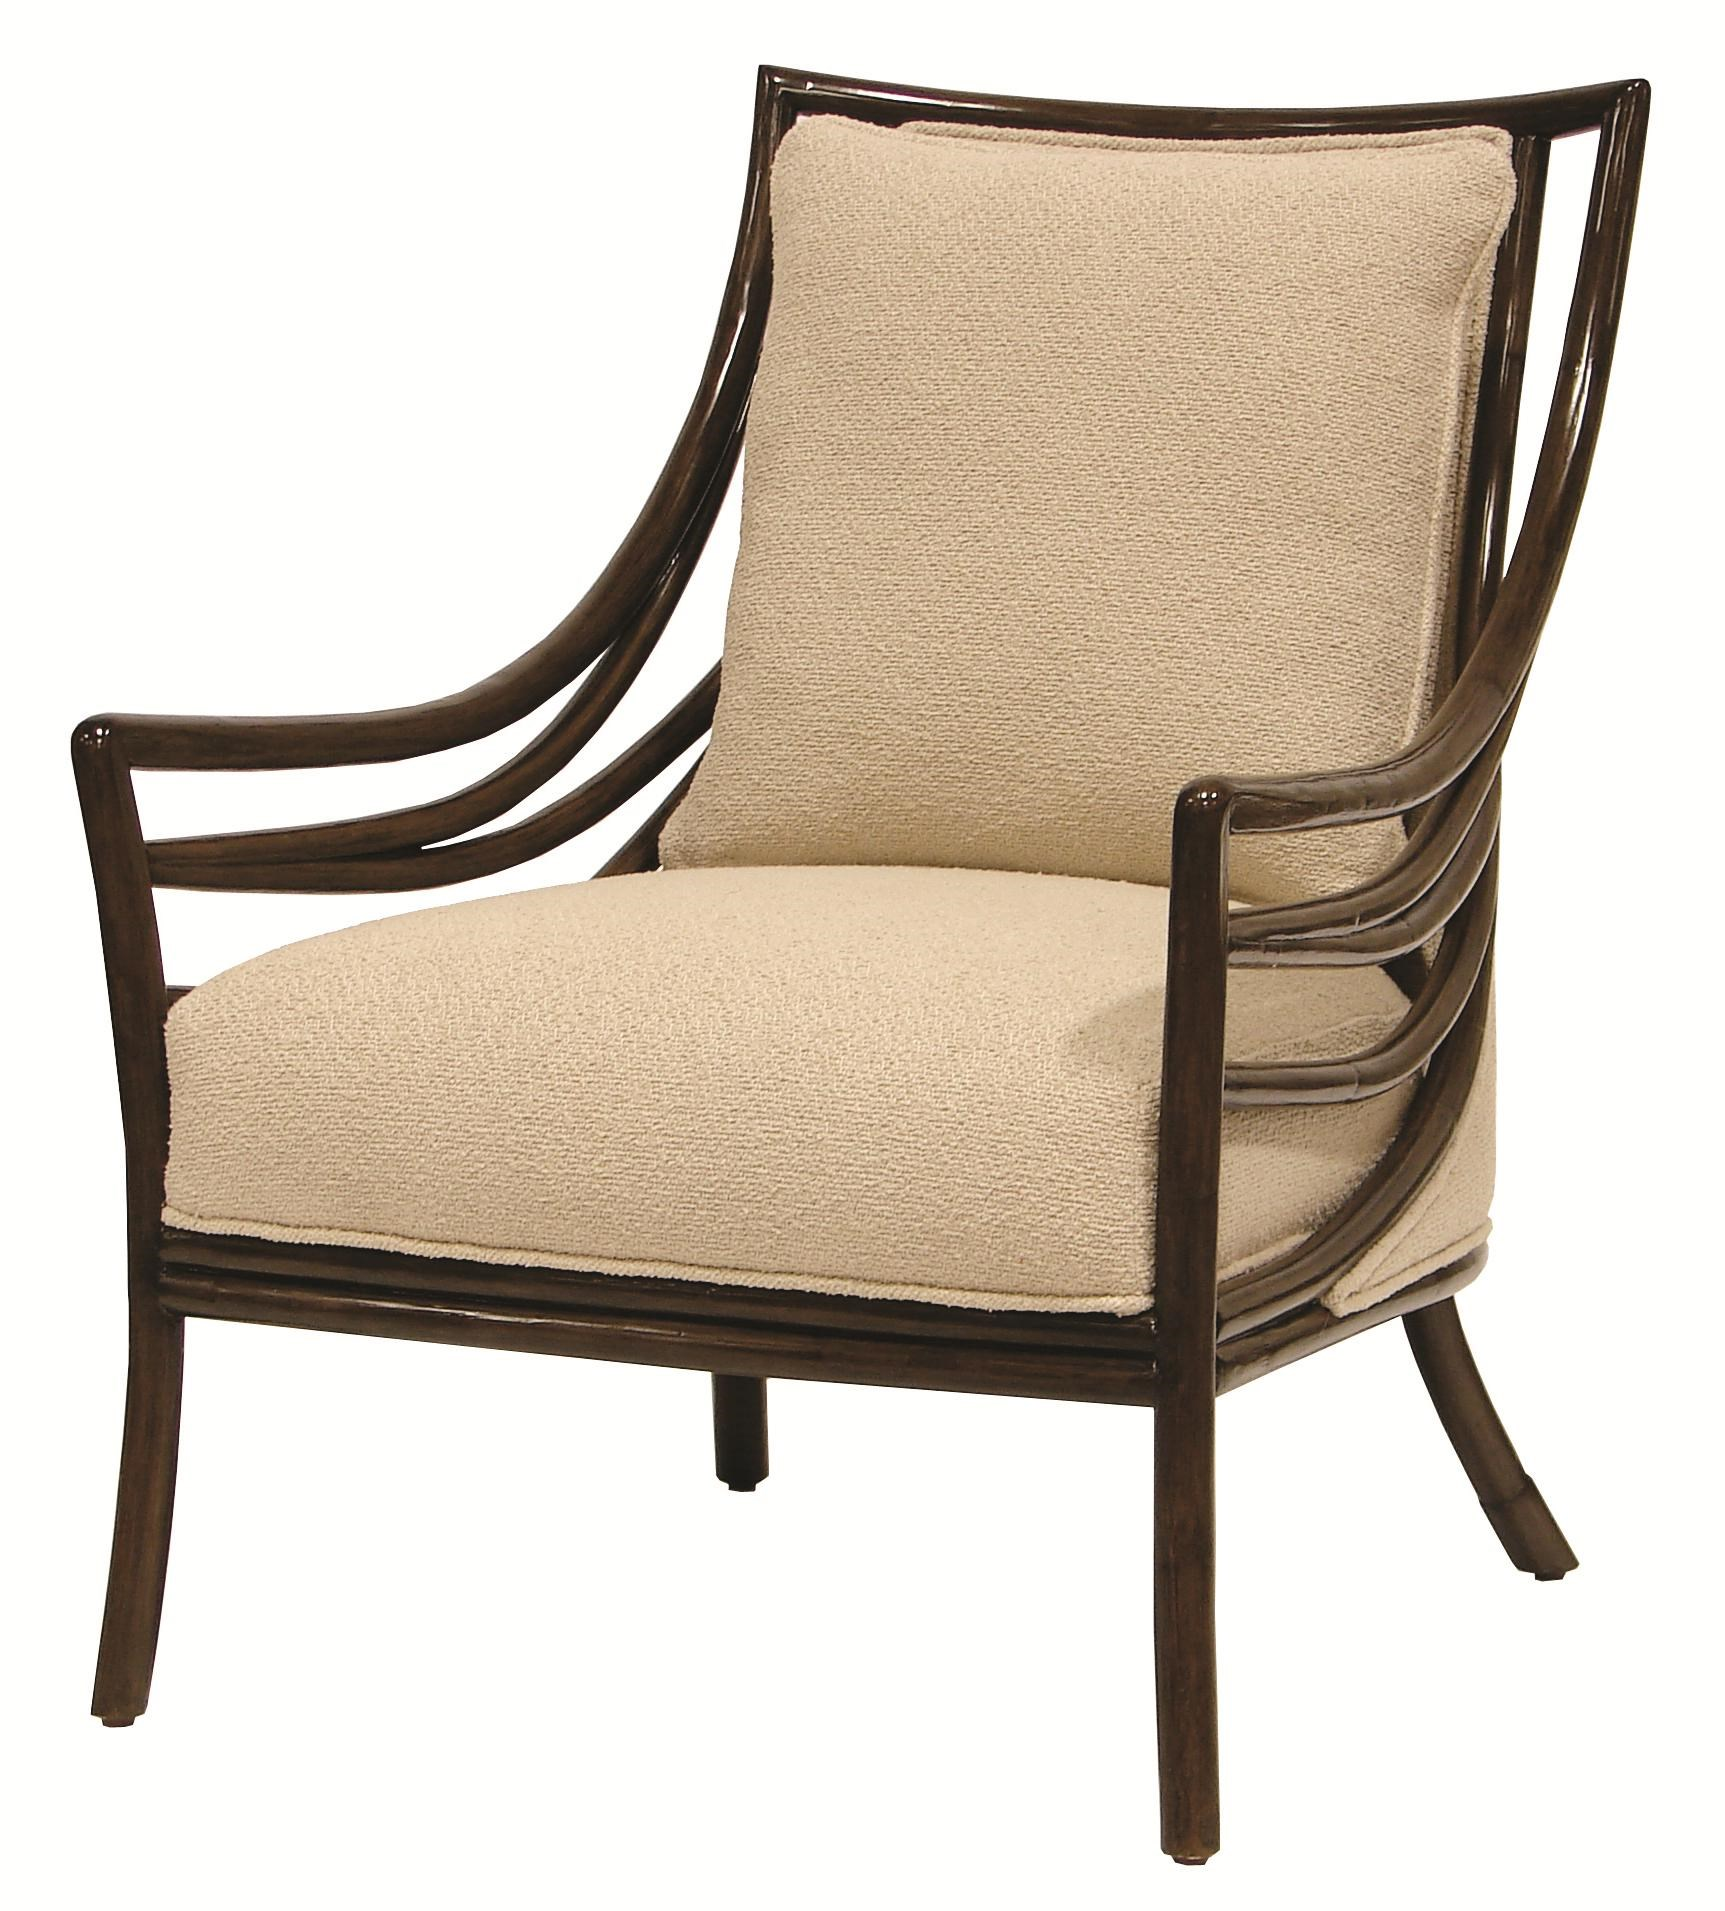 Palecek Accent Chairs by Palecek Transitional Crescent Lounge Chair Design